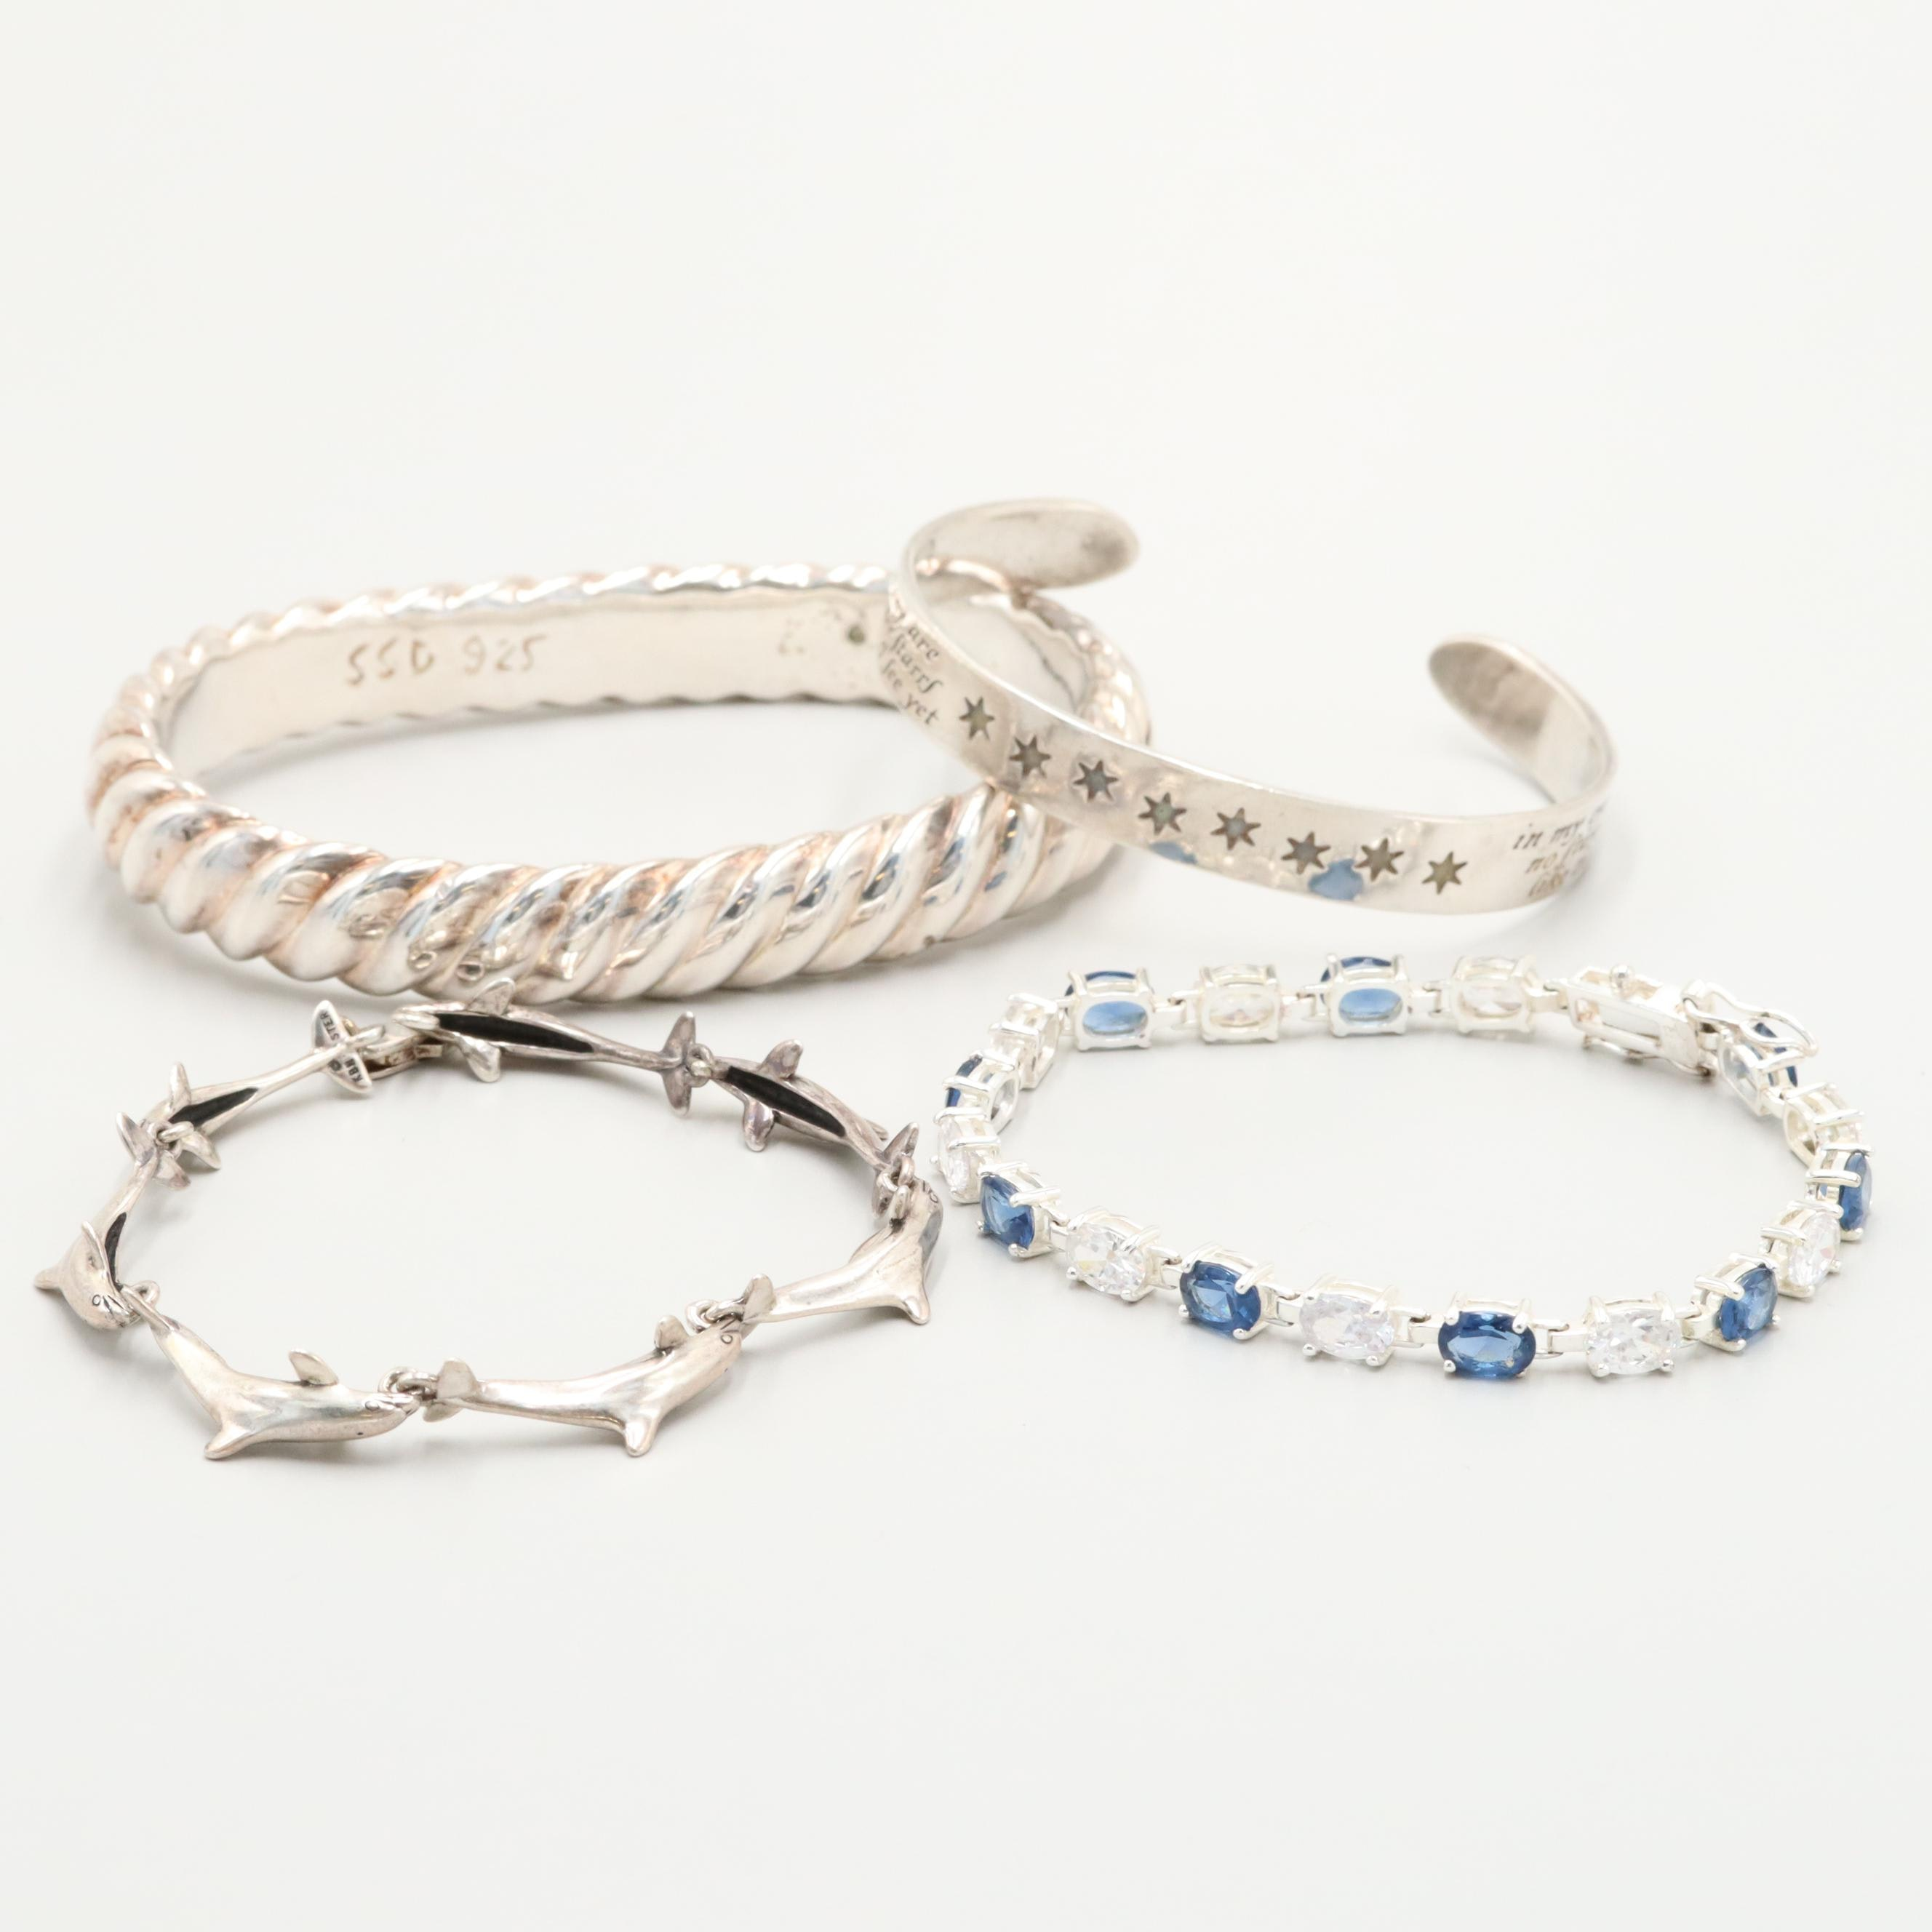 Sterling Silver Bracelets with Simon Sebbag Including Cubic Zirconia